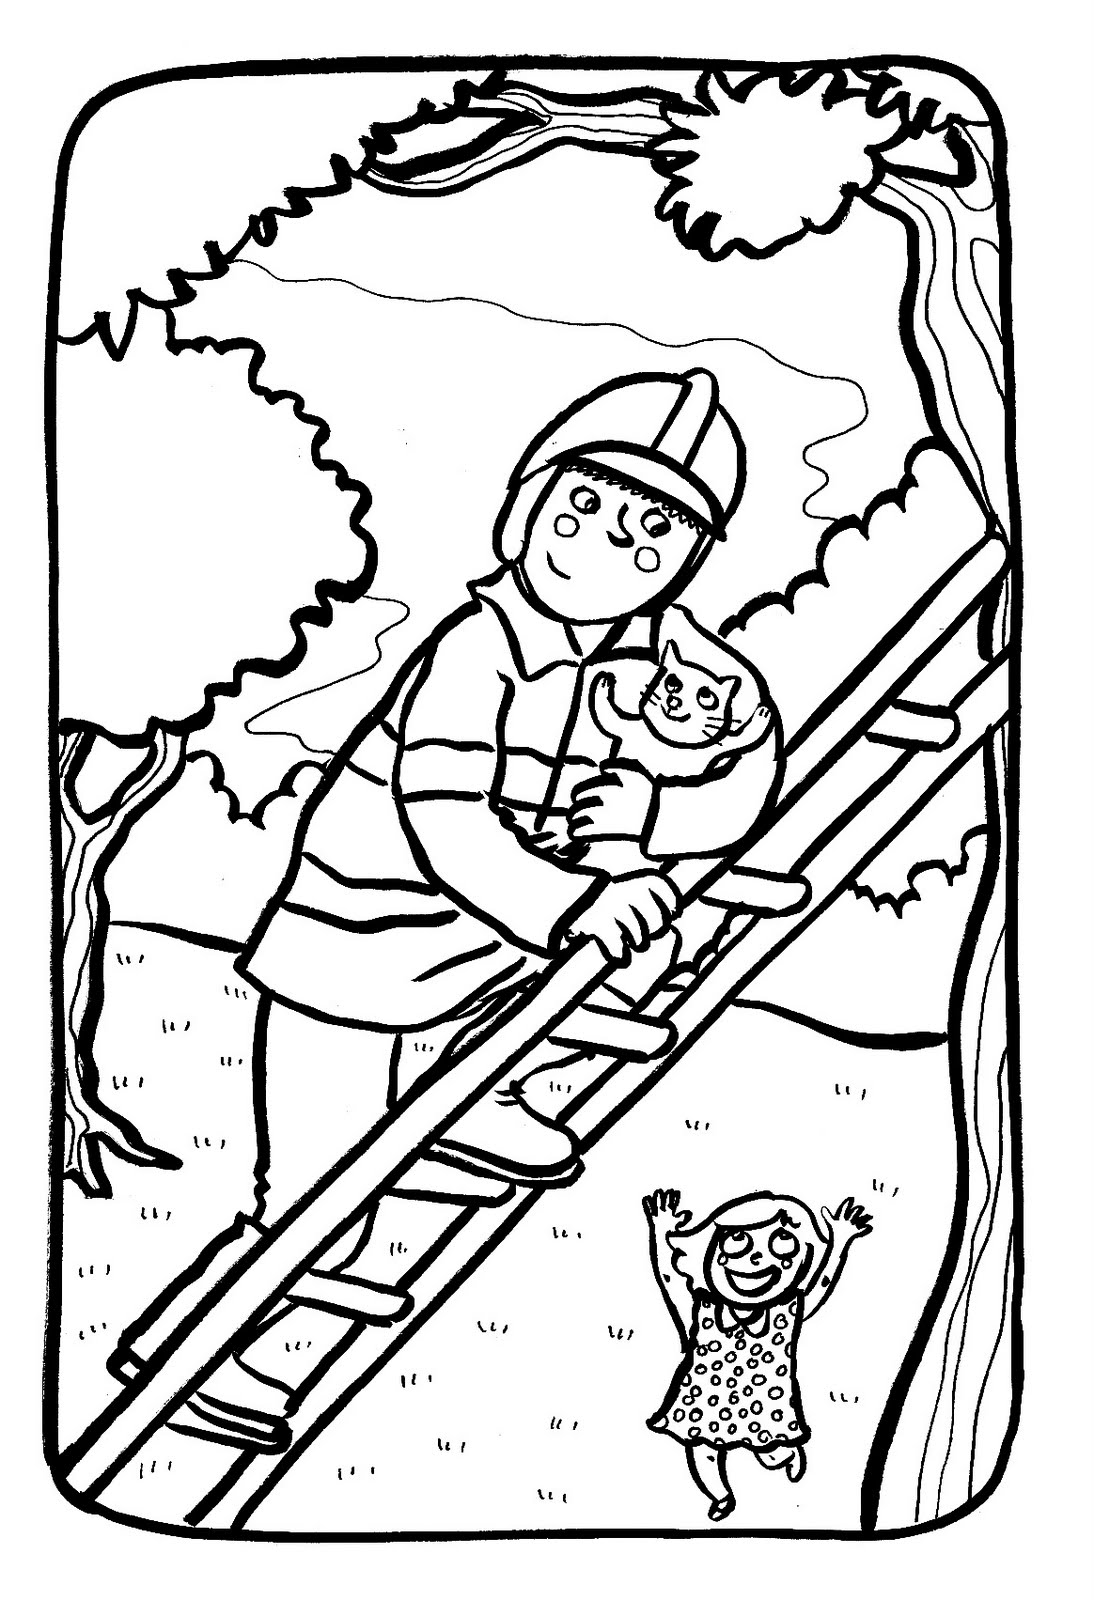 Fire department to color for children - Fire Department Kids ...